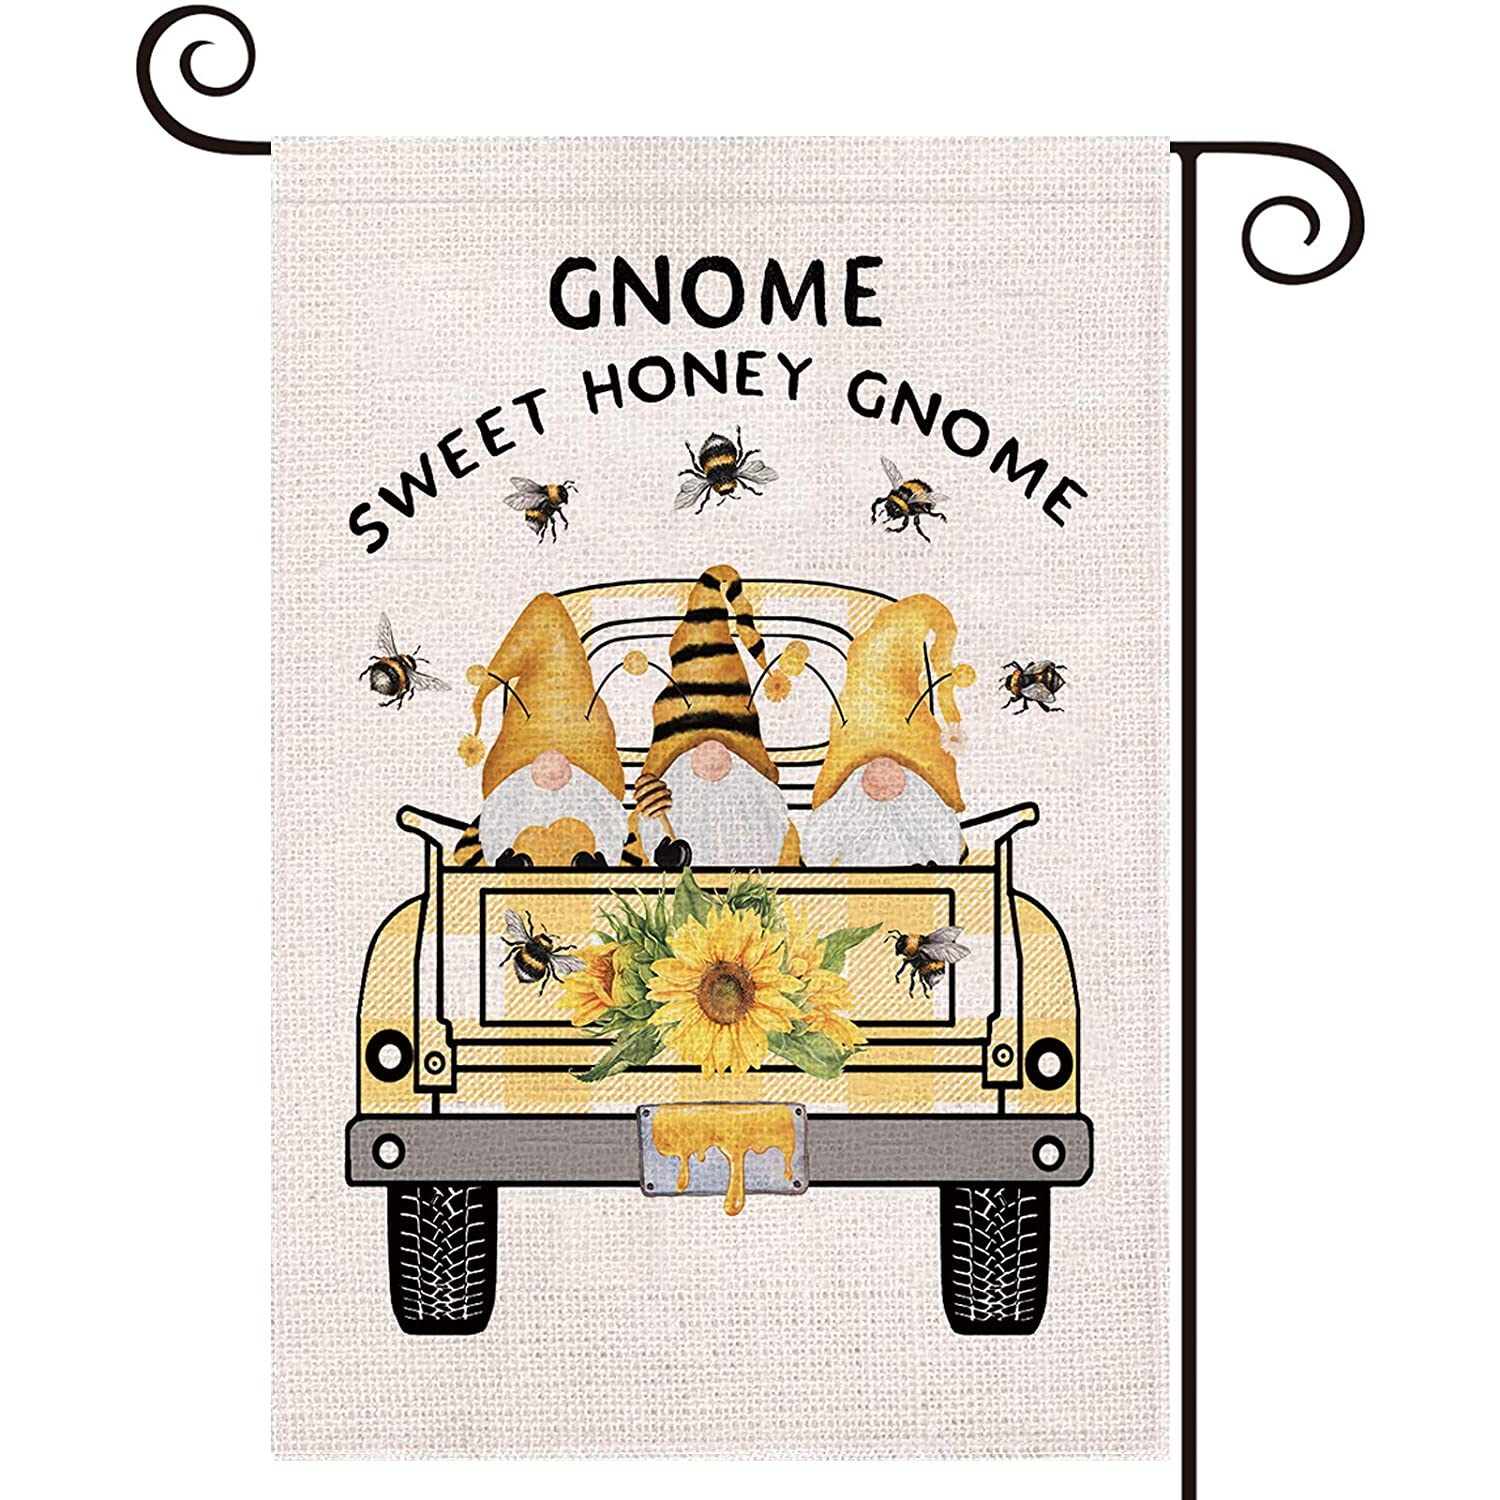 LARMOY Summer Truck with Sunflower Bee Gnomes Garden Flag 12.5 x 18 Inch Vertical Double Sided, Small Holiday Party Yard Sign for Farmhouse Outside Decoration